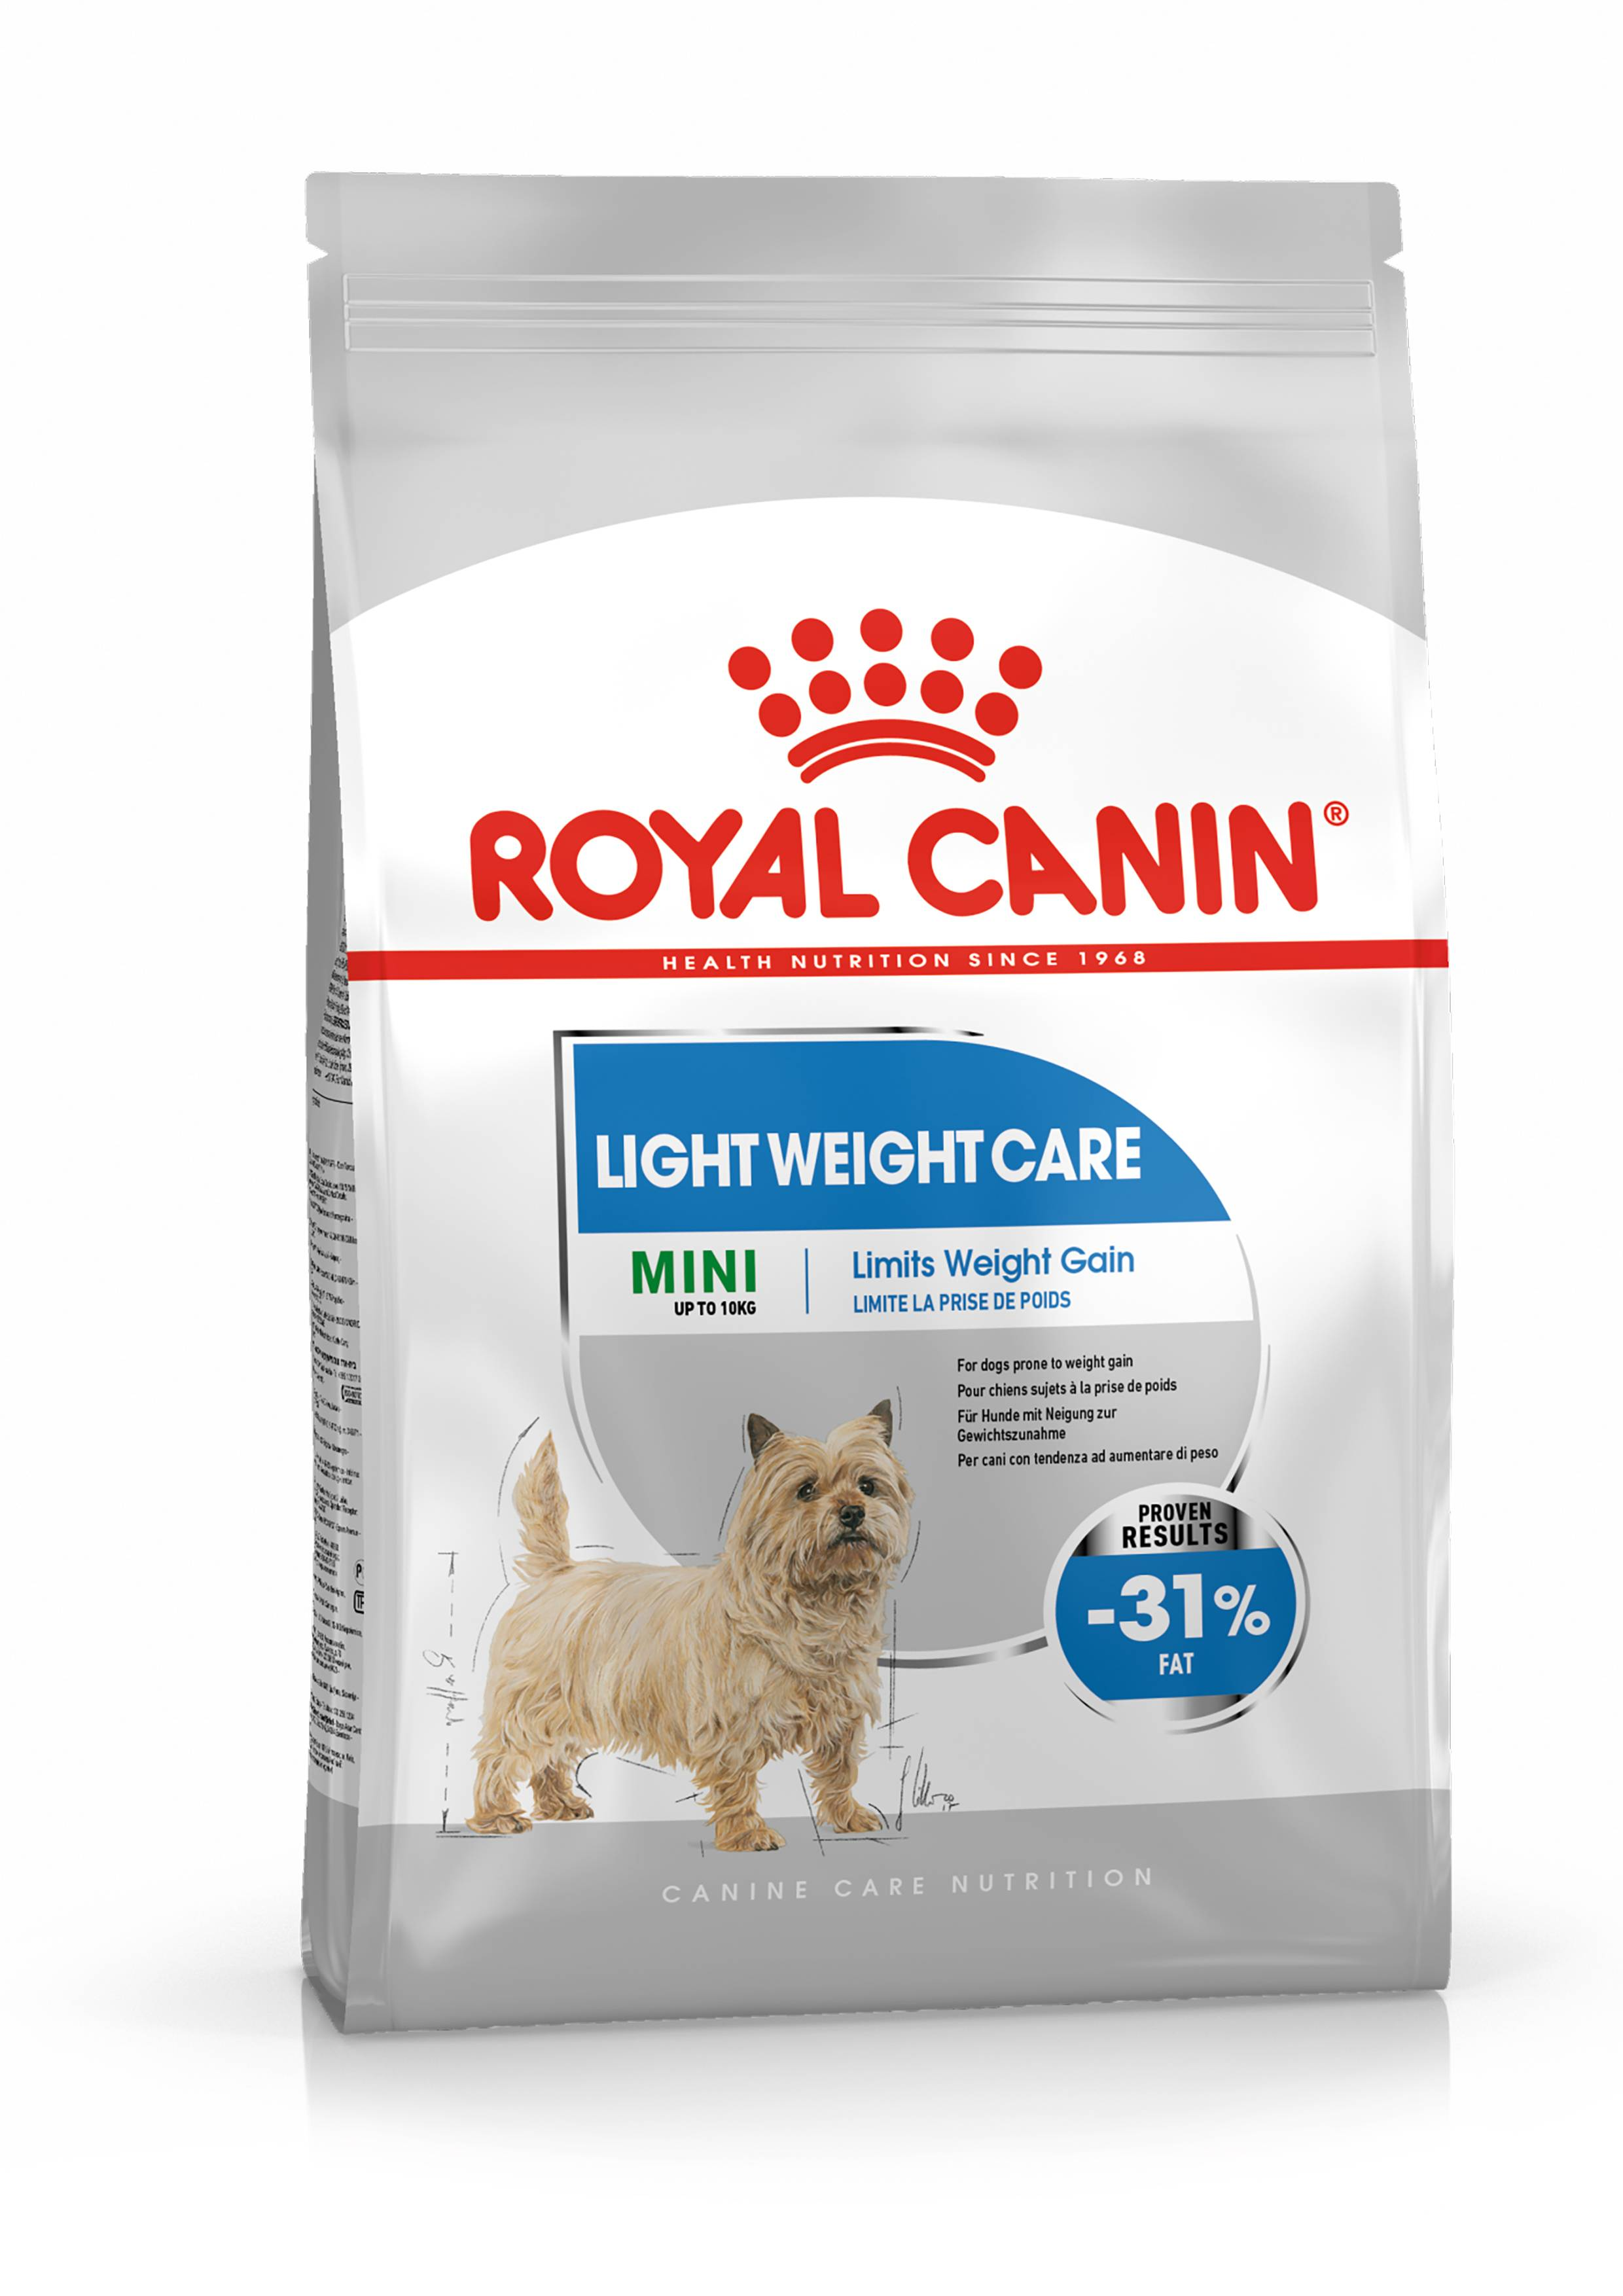 Royal Canin Mini Light Weight Care pour chien 2 x 8 kg